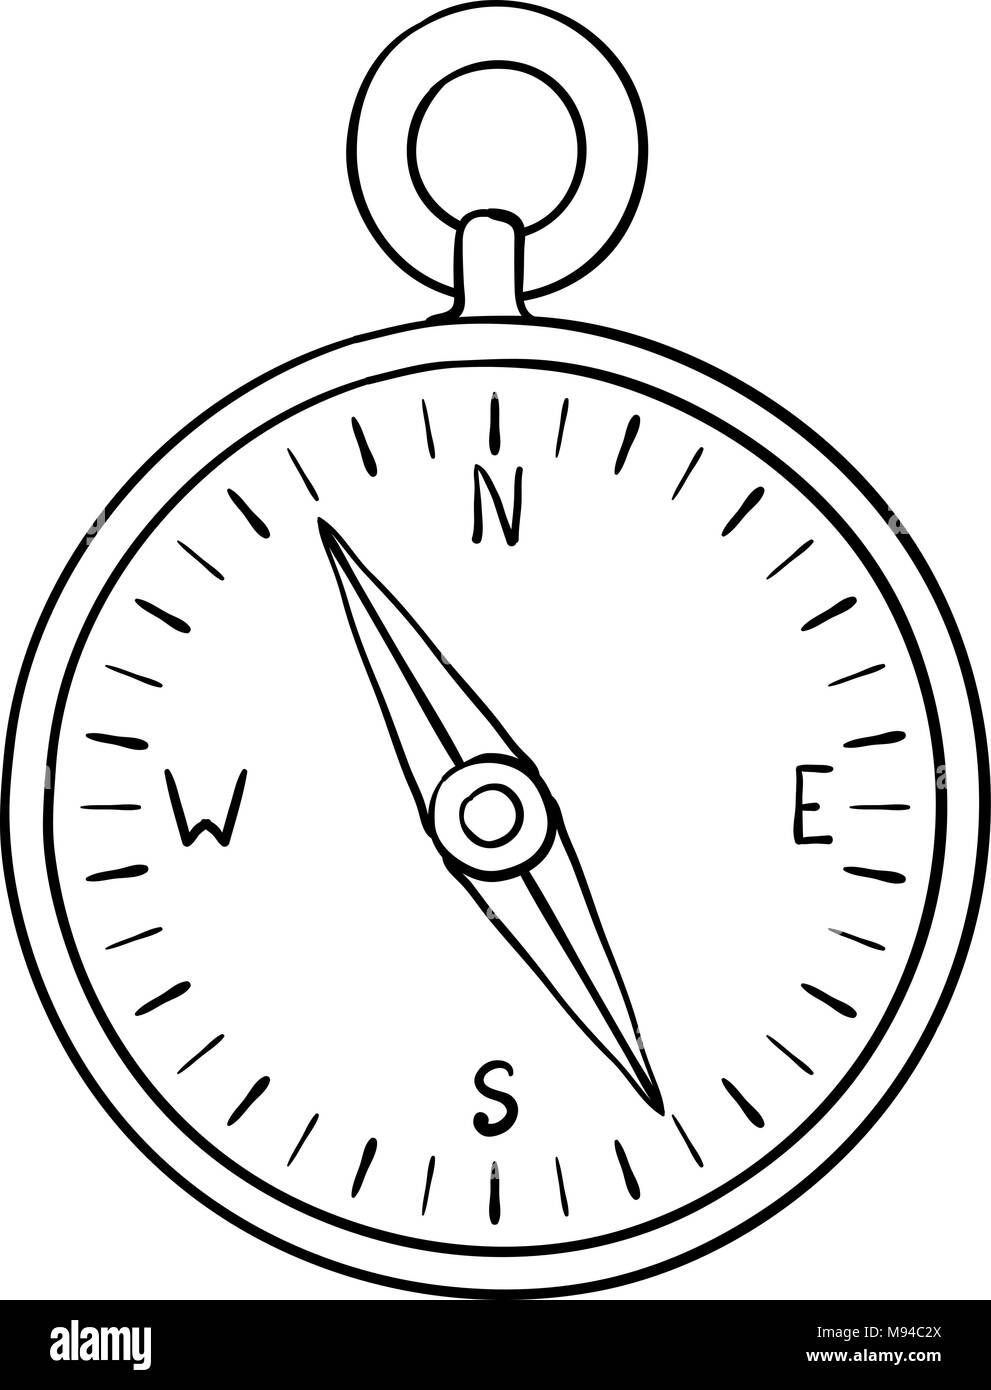 Compass. Doodle - Stock Image